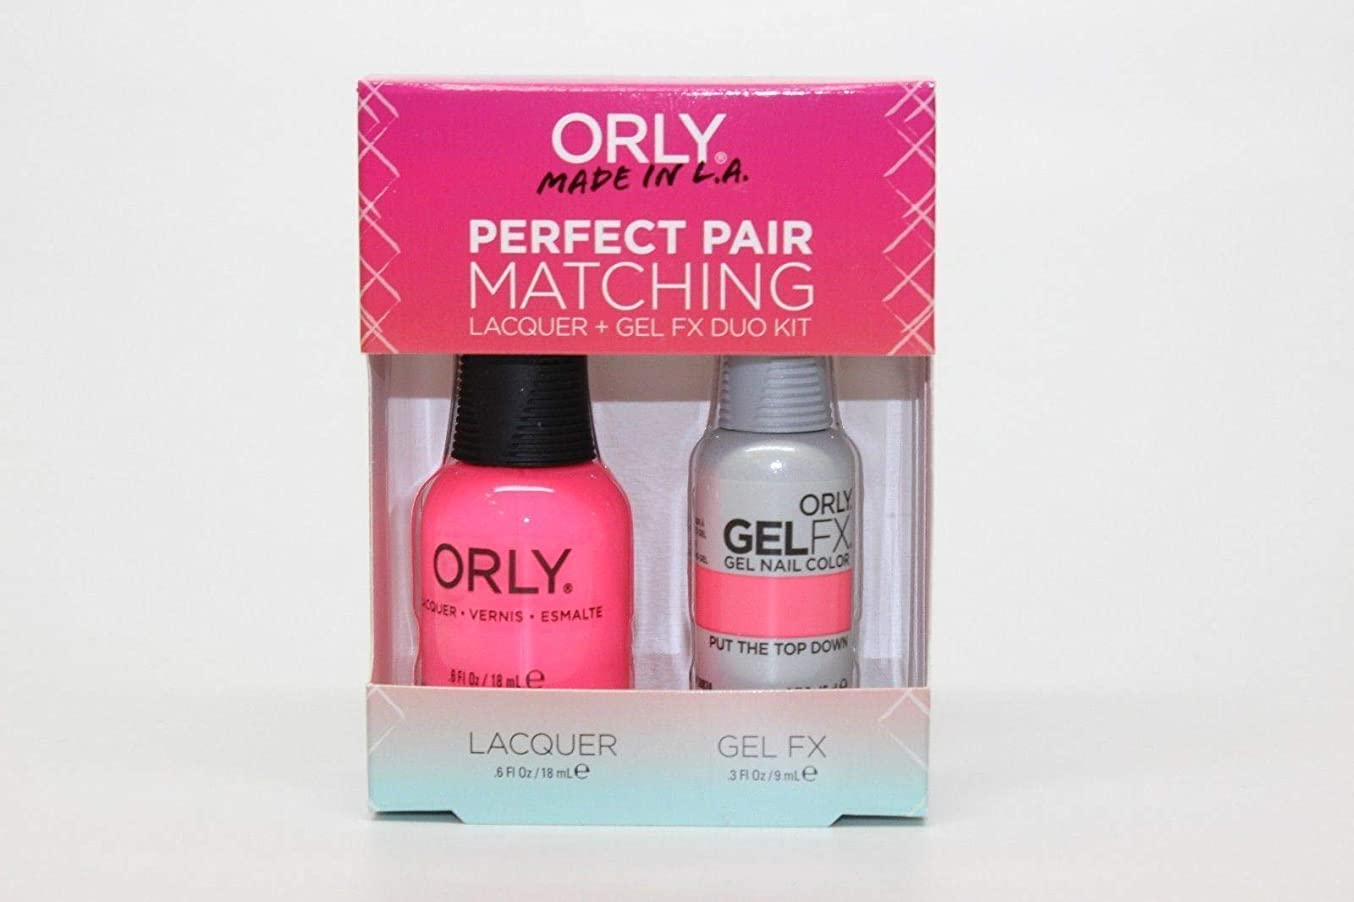 移住する数字立ち向かうOrly - Perfect Pair Matching Lacquer+Gel FX Kit - Put The Top Down - 0.6 oz / 0.3 oz